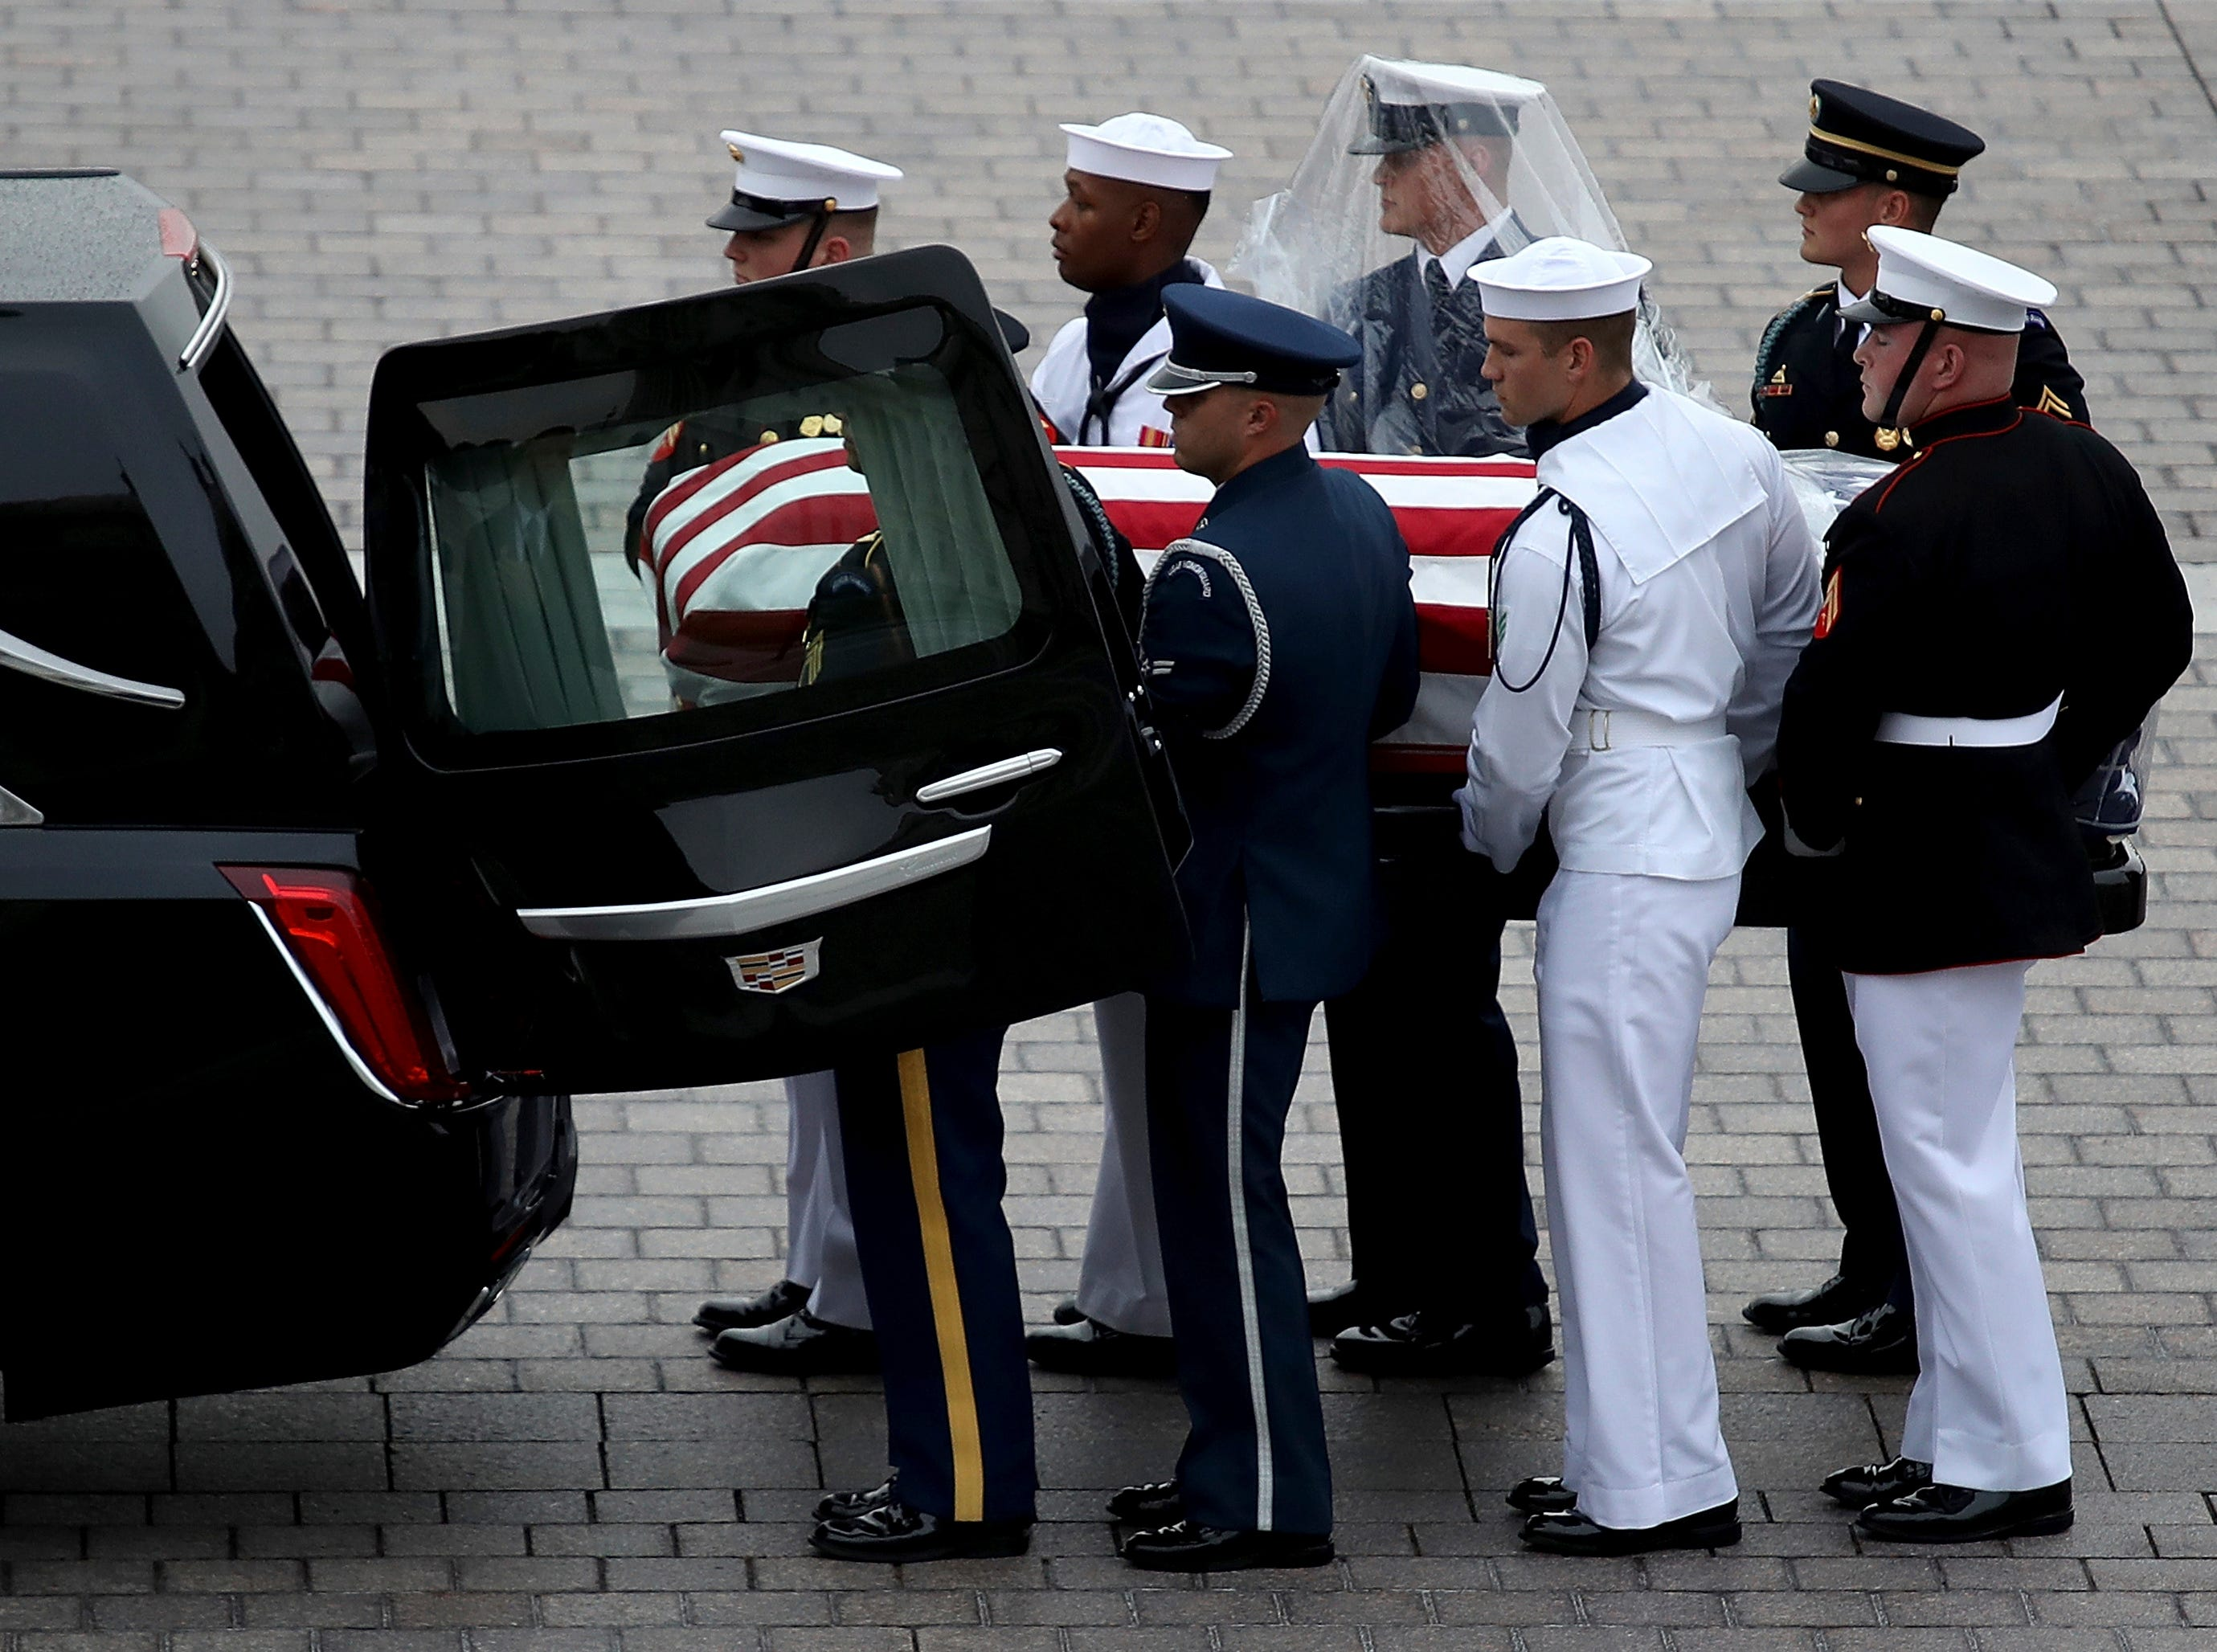 A military honor guard team places the casket of Sen. John McCain, R-Ariz., into a waiting hearse at the U.S. Capitol, Saturday, Sept. 1, 2018 in Washington.  (Win McNamee/Pool photo via AP)